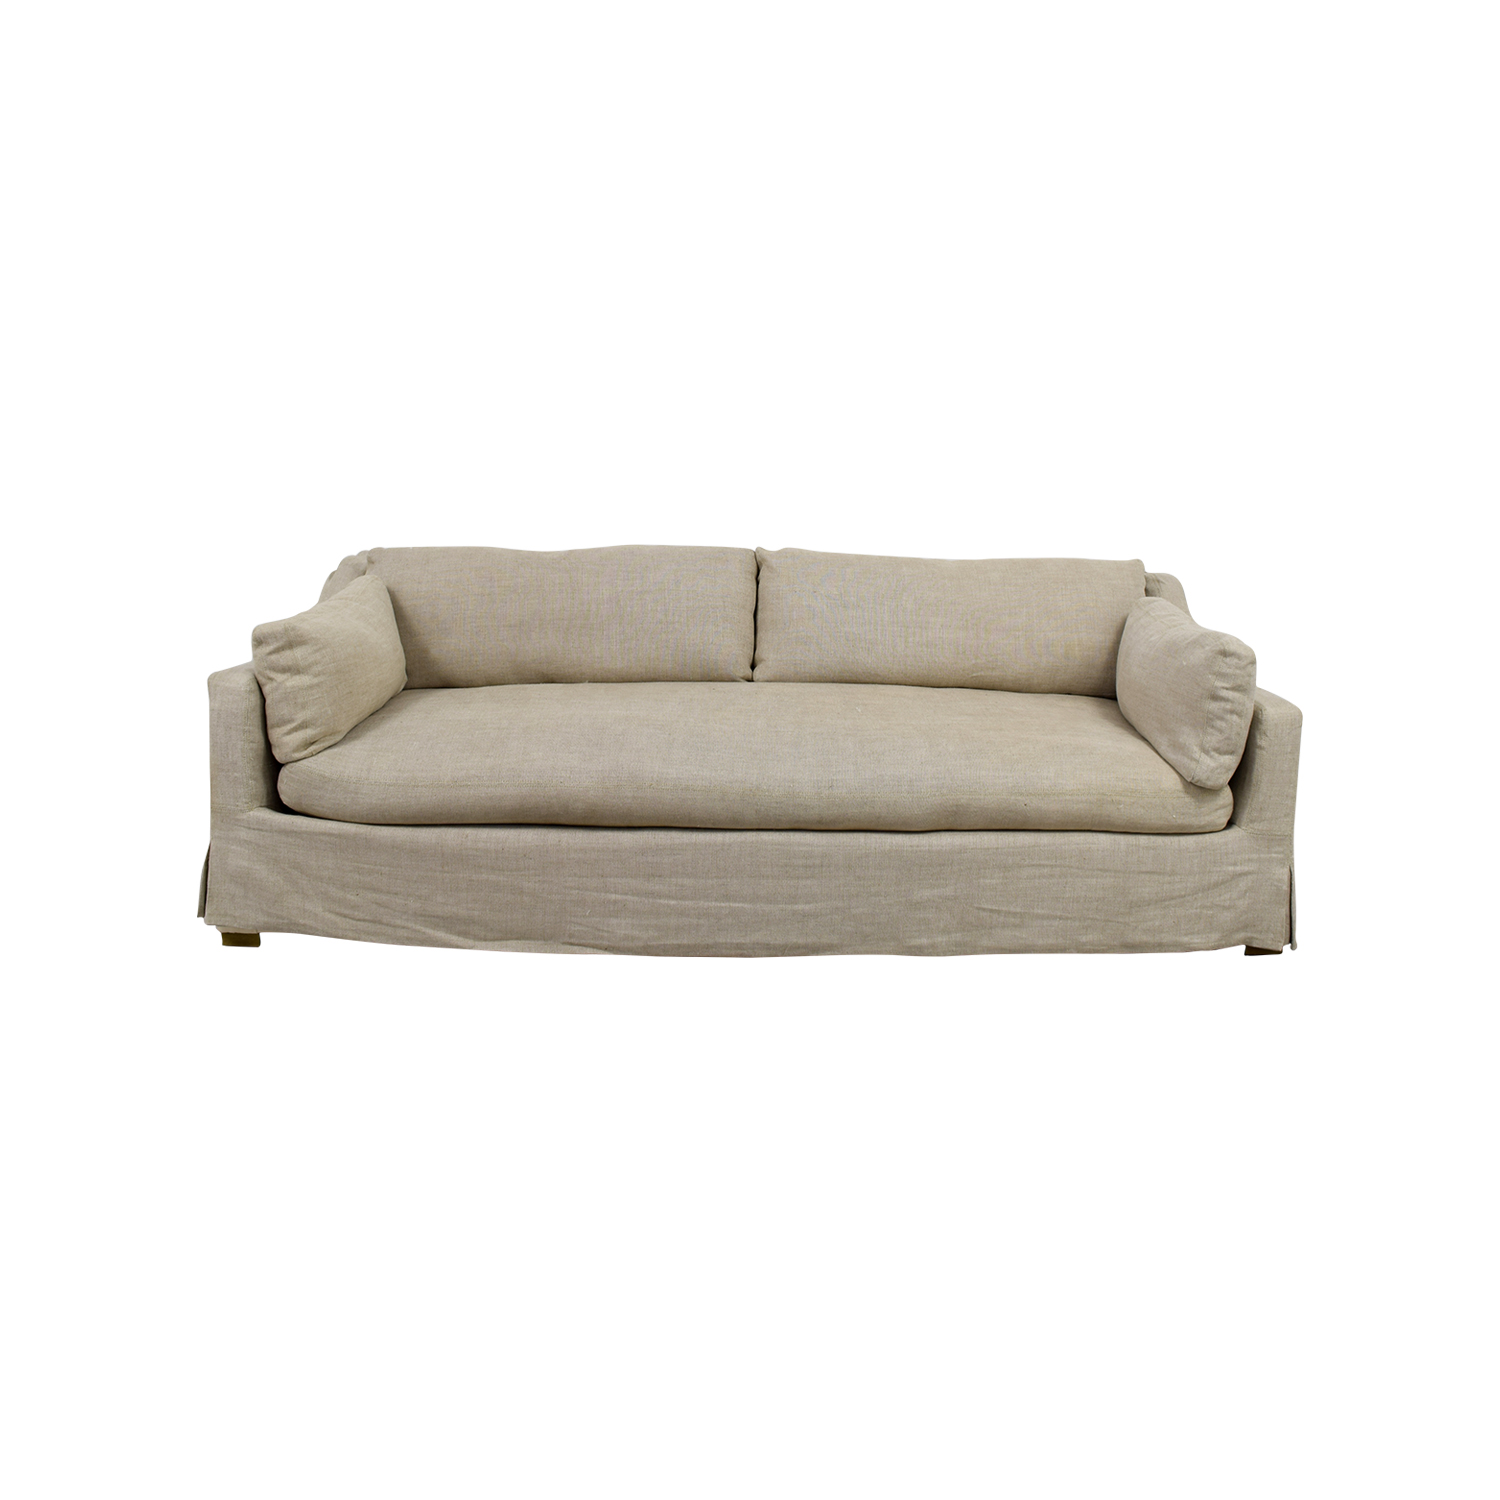 buy Restoration Hardware Classic Belgian Beige Sofa Restoration Hardware